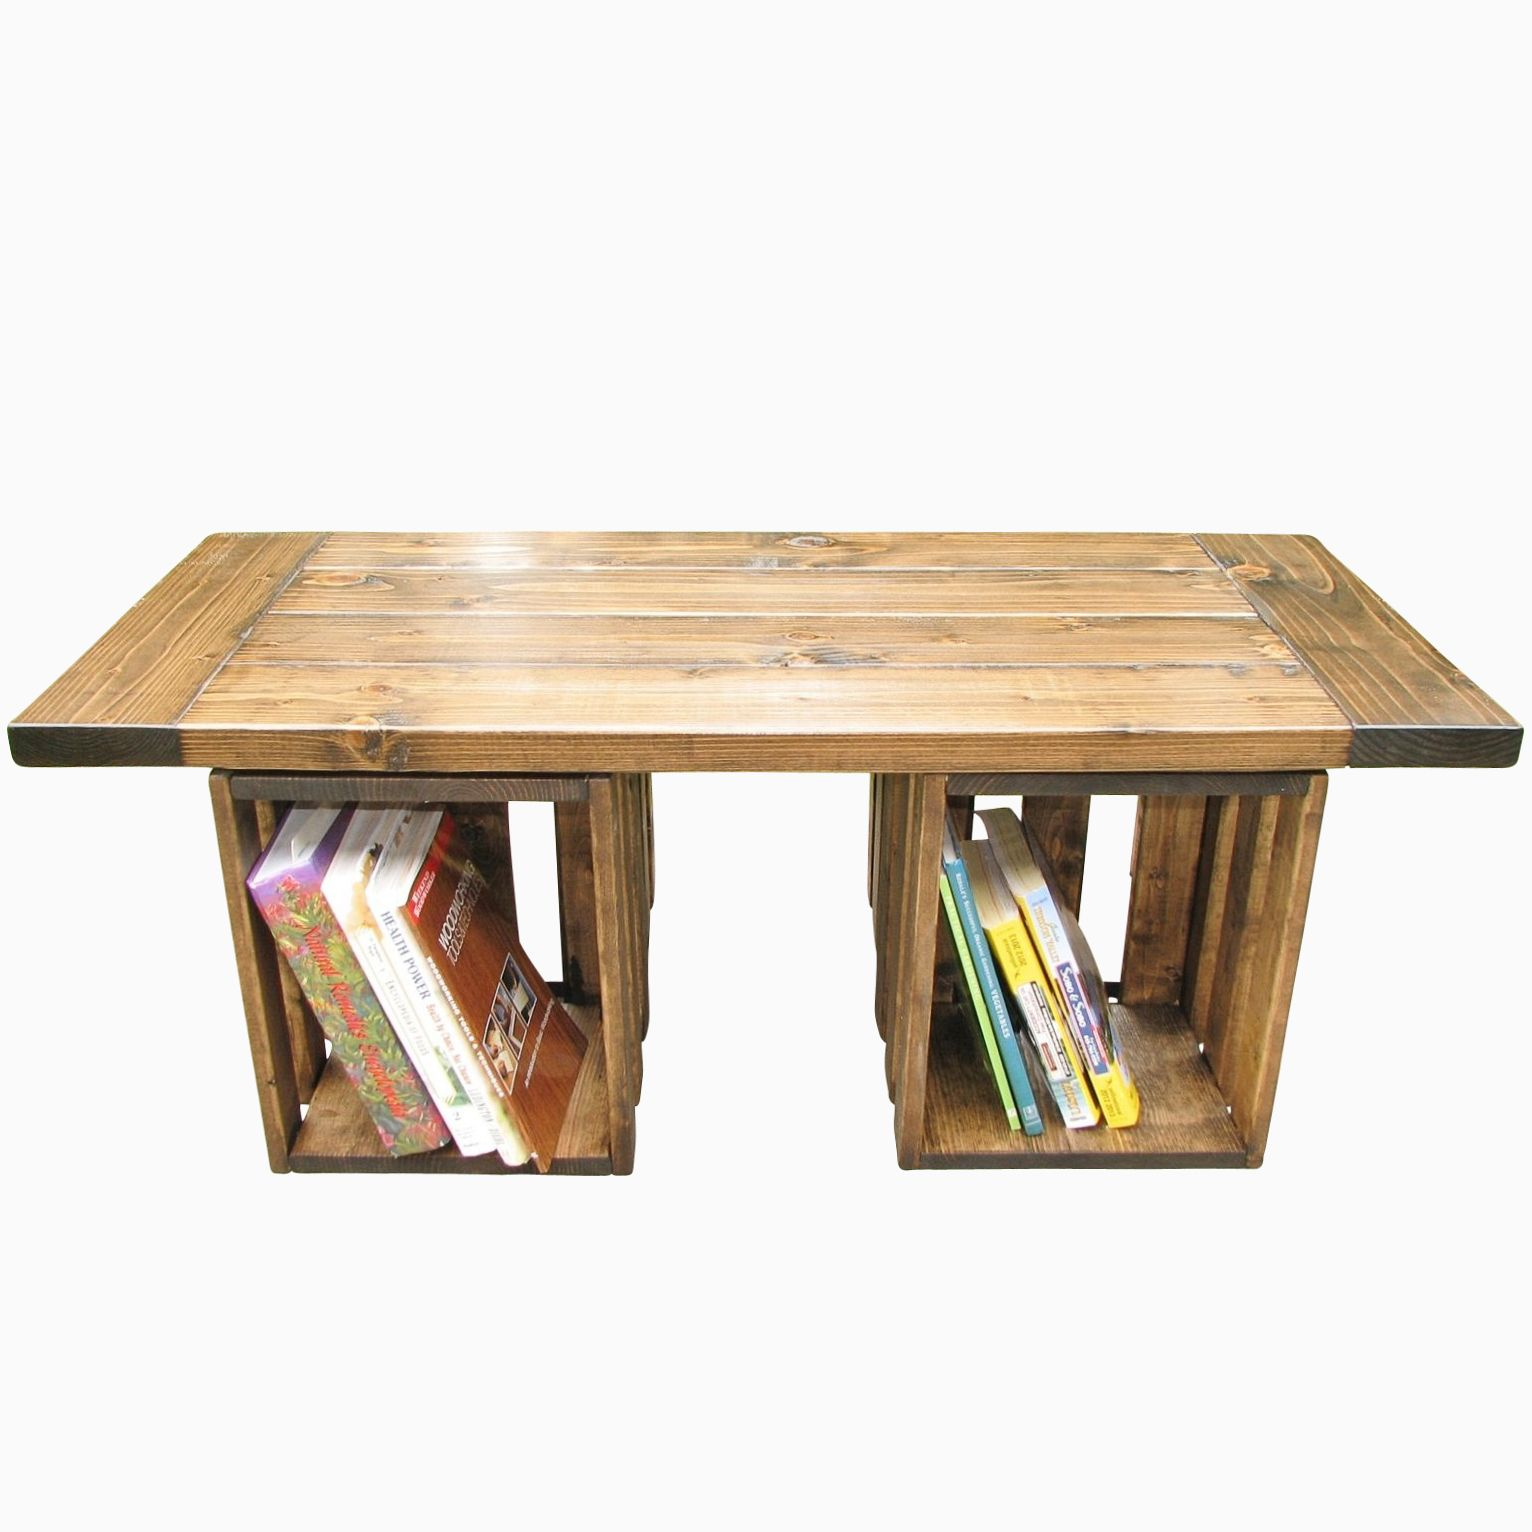 Buy a hand made reclaimed wood farmhouse style coffee table made to order from custom made Farm style coffee tables